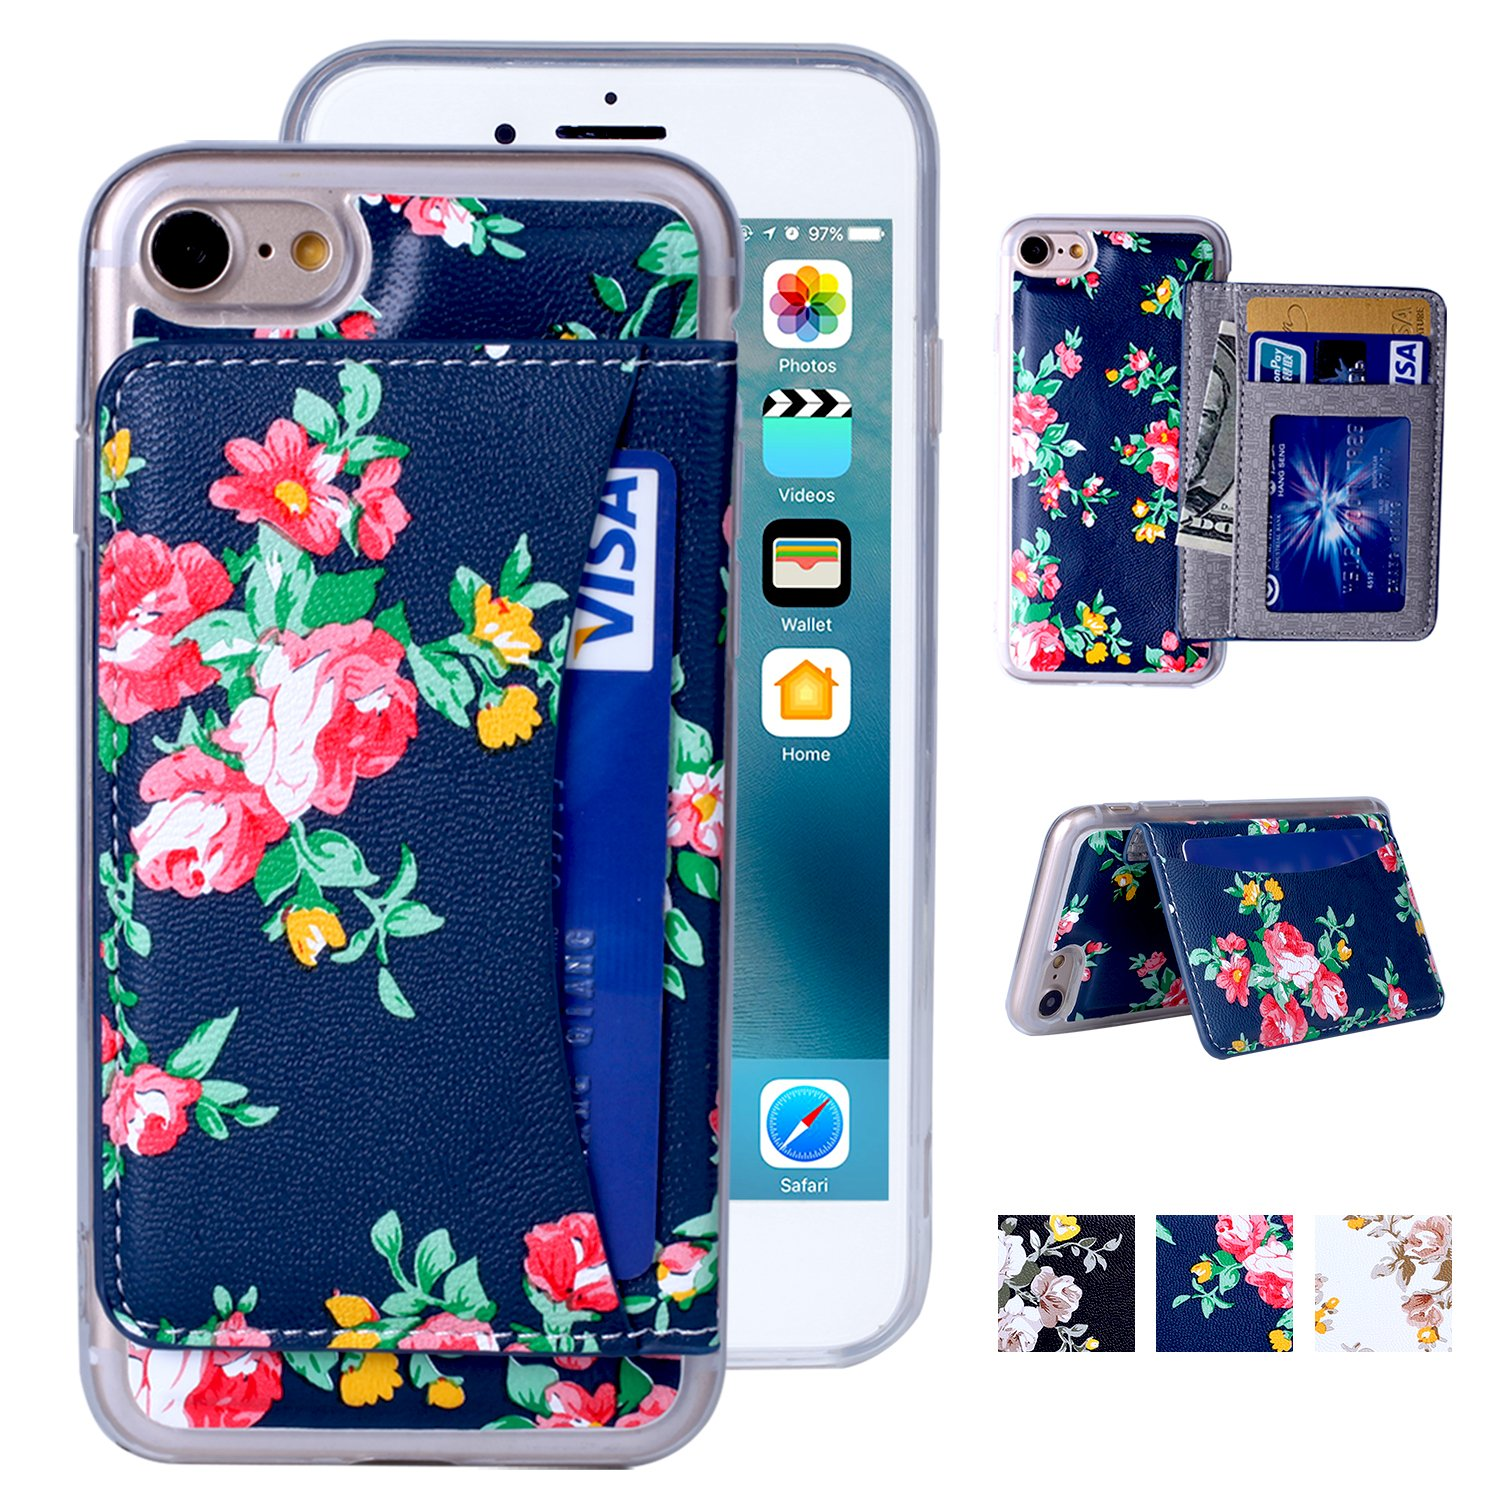 iPhone 6 Plus/6s Plus Wallet Case, Tripky Premium PU Leather Flower Floral Back Folio Flip Wallet Cases Magnetic Holster Case for iPhone 6/6s Plus with Stand, 3 Card Slots-Navy Blue